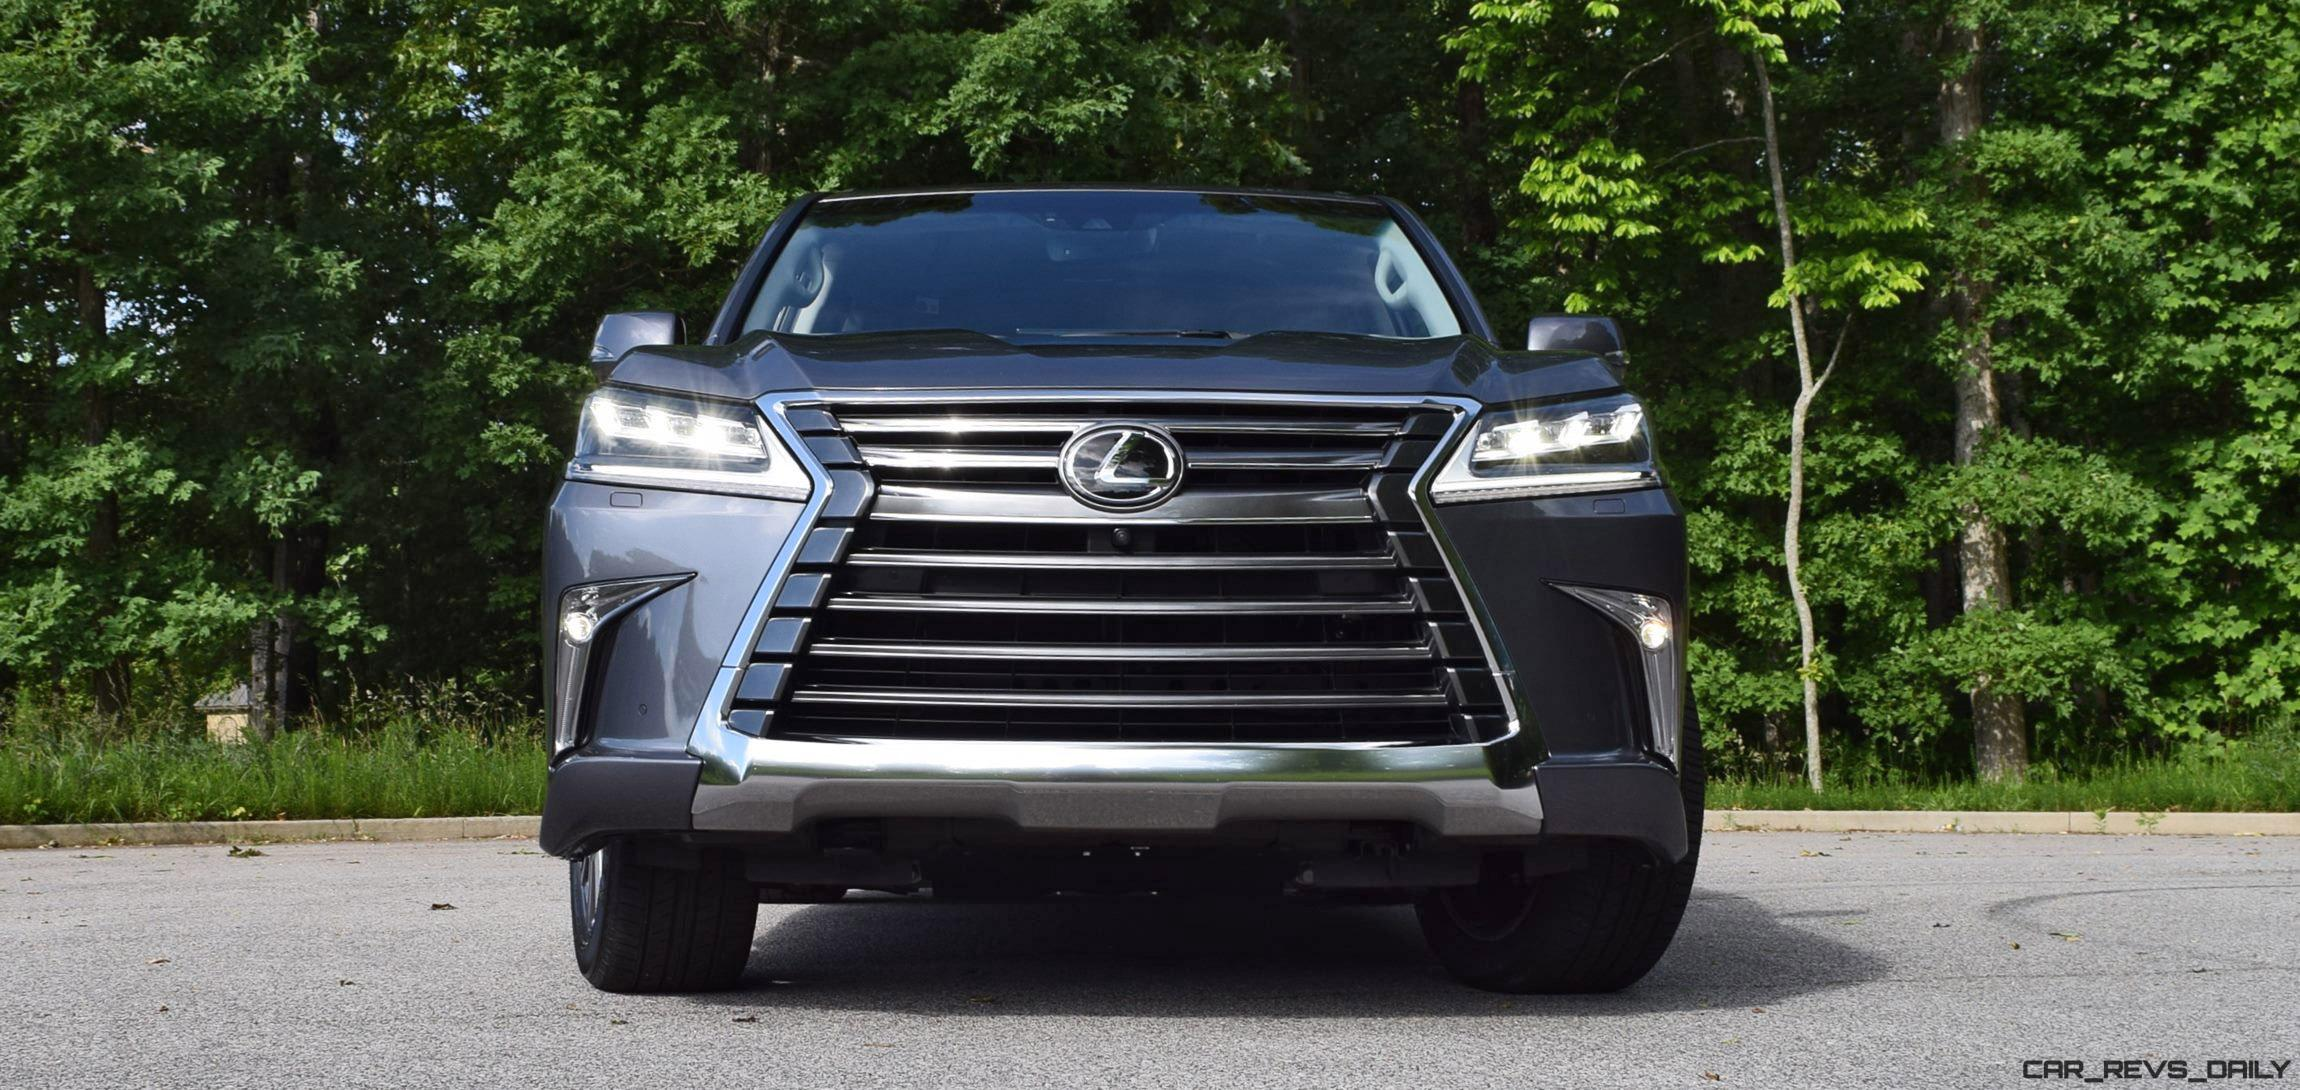 2016 lexus lx570 road test review sport plus drive. Black Bedroom Furniture Sets. Home Design Ideas